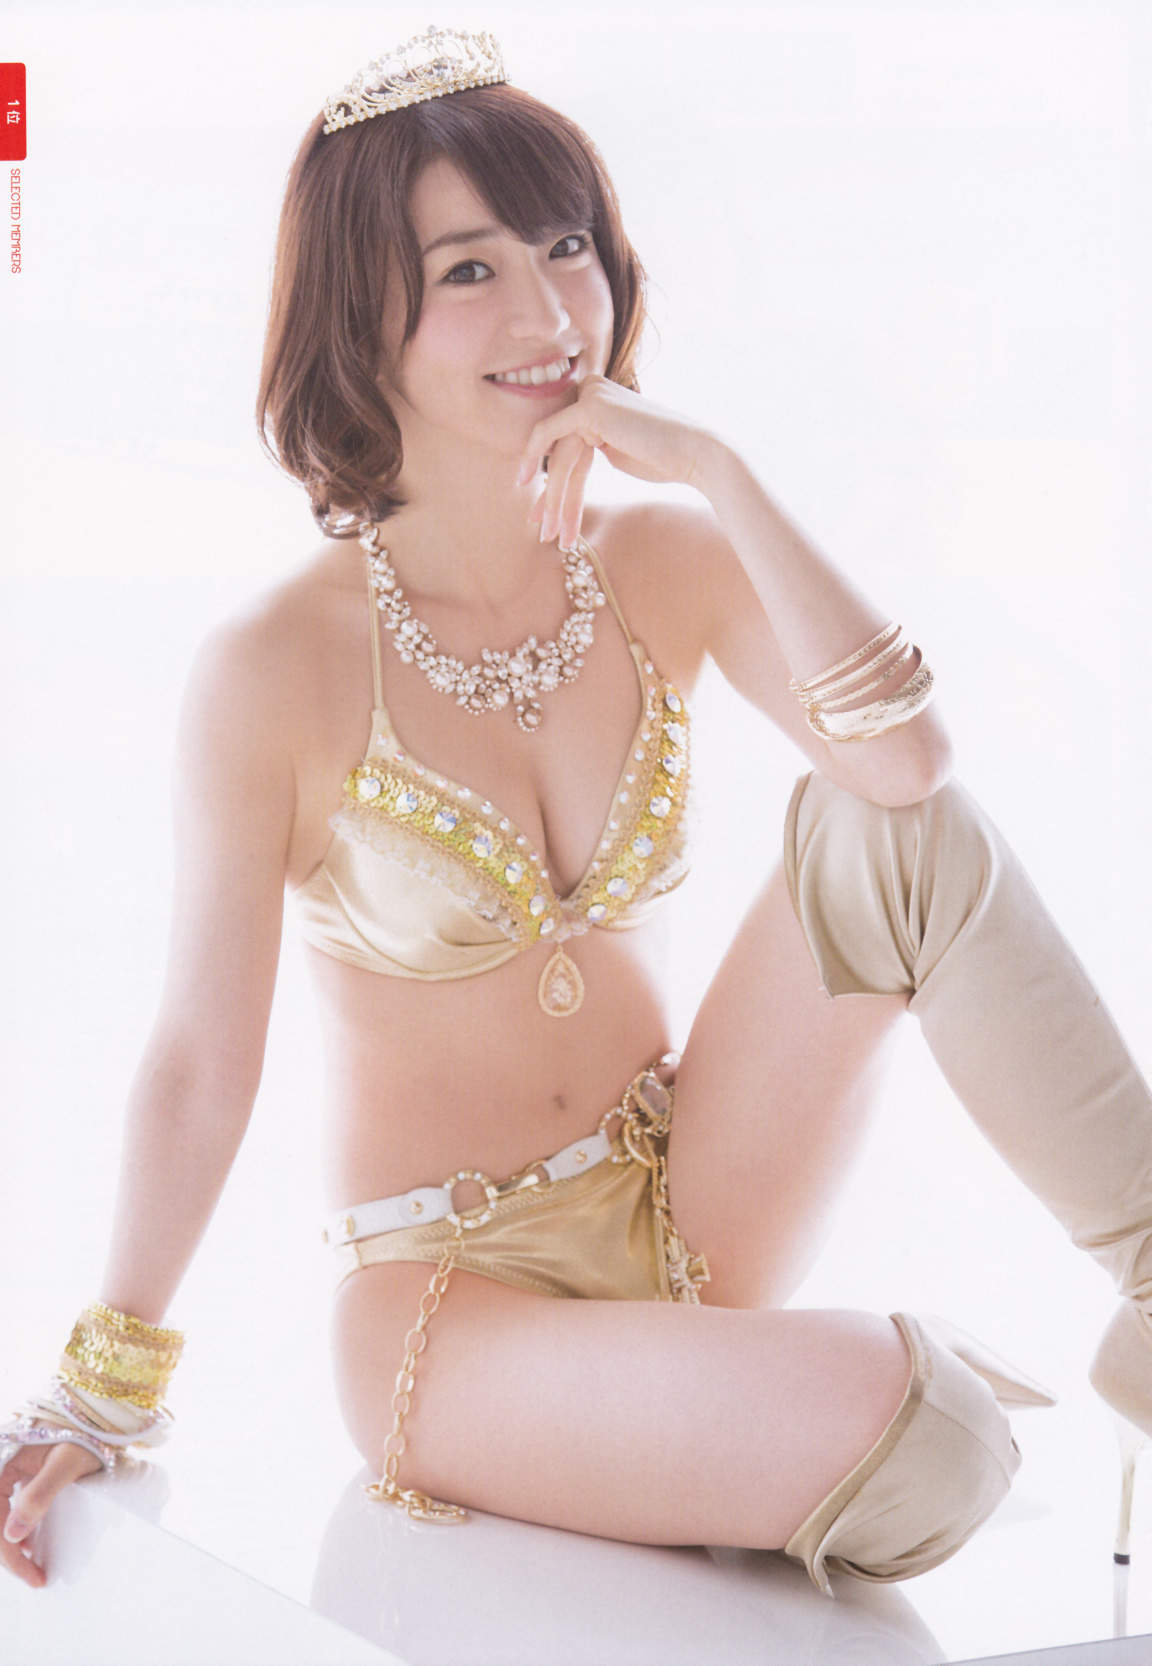 Yuko Oshima Android Iphone Wallpaper 37852 Asiachan